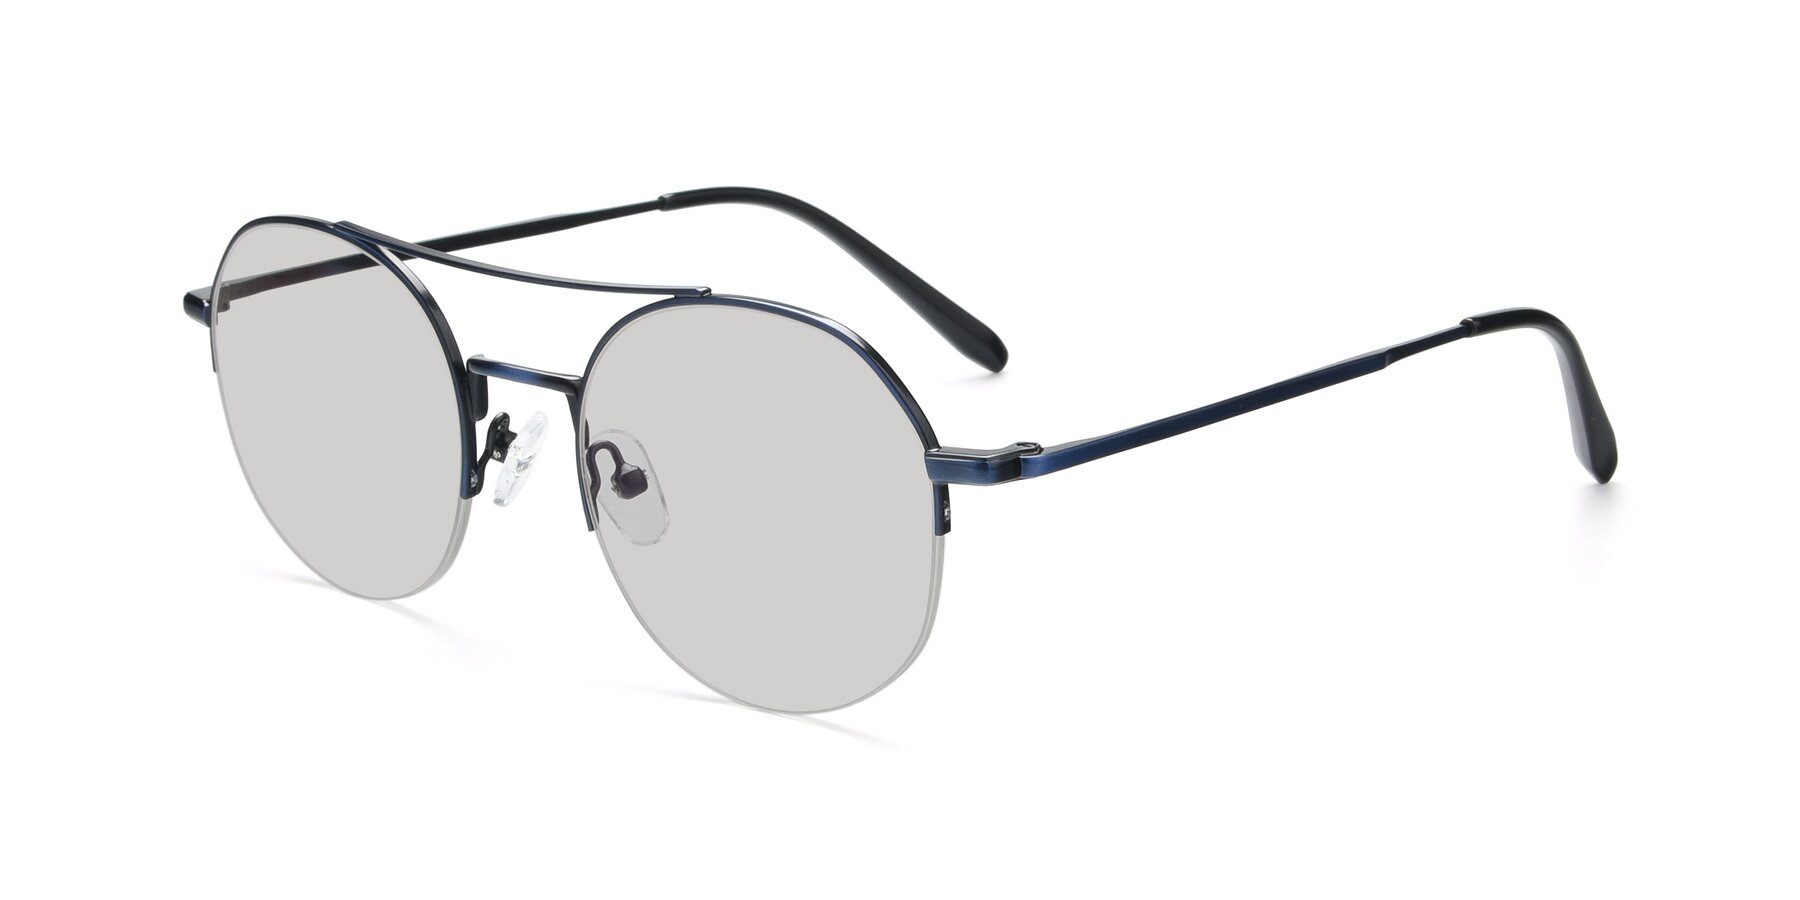 Angle of 9521 in Blue with Light Gray Tinted Lenses